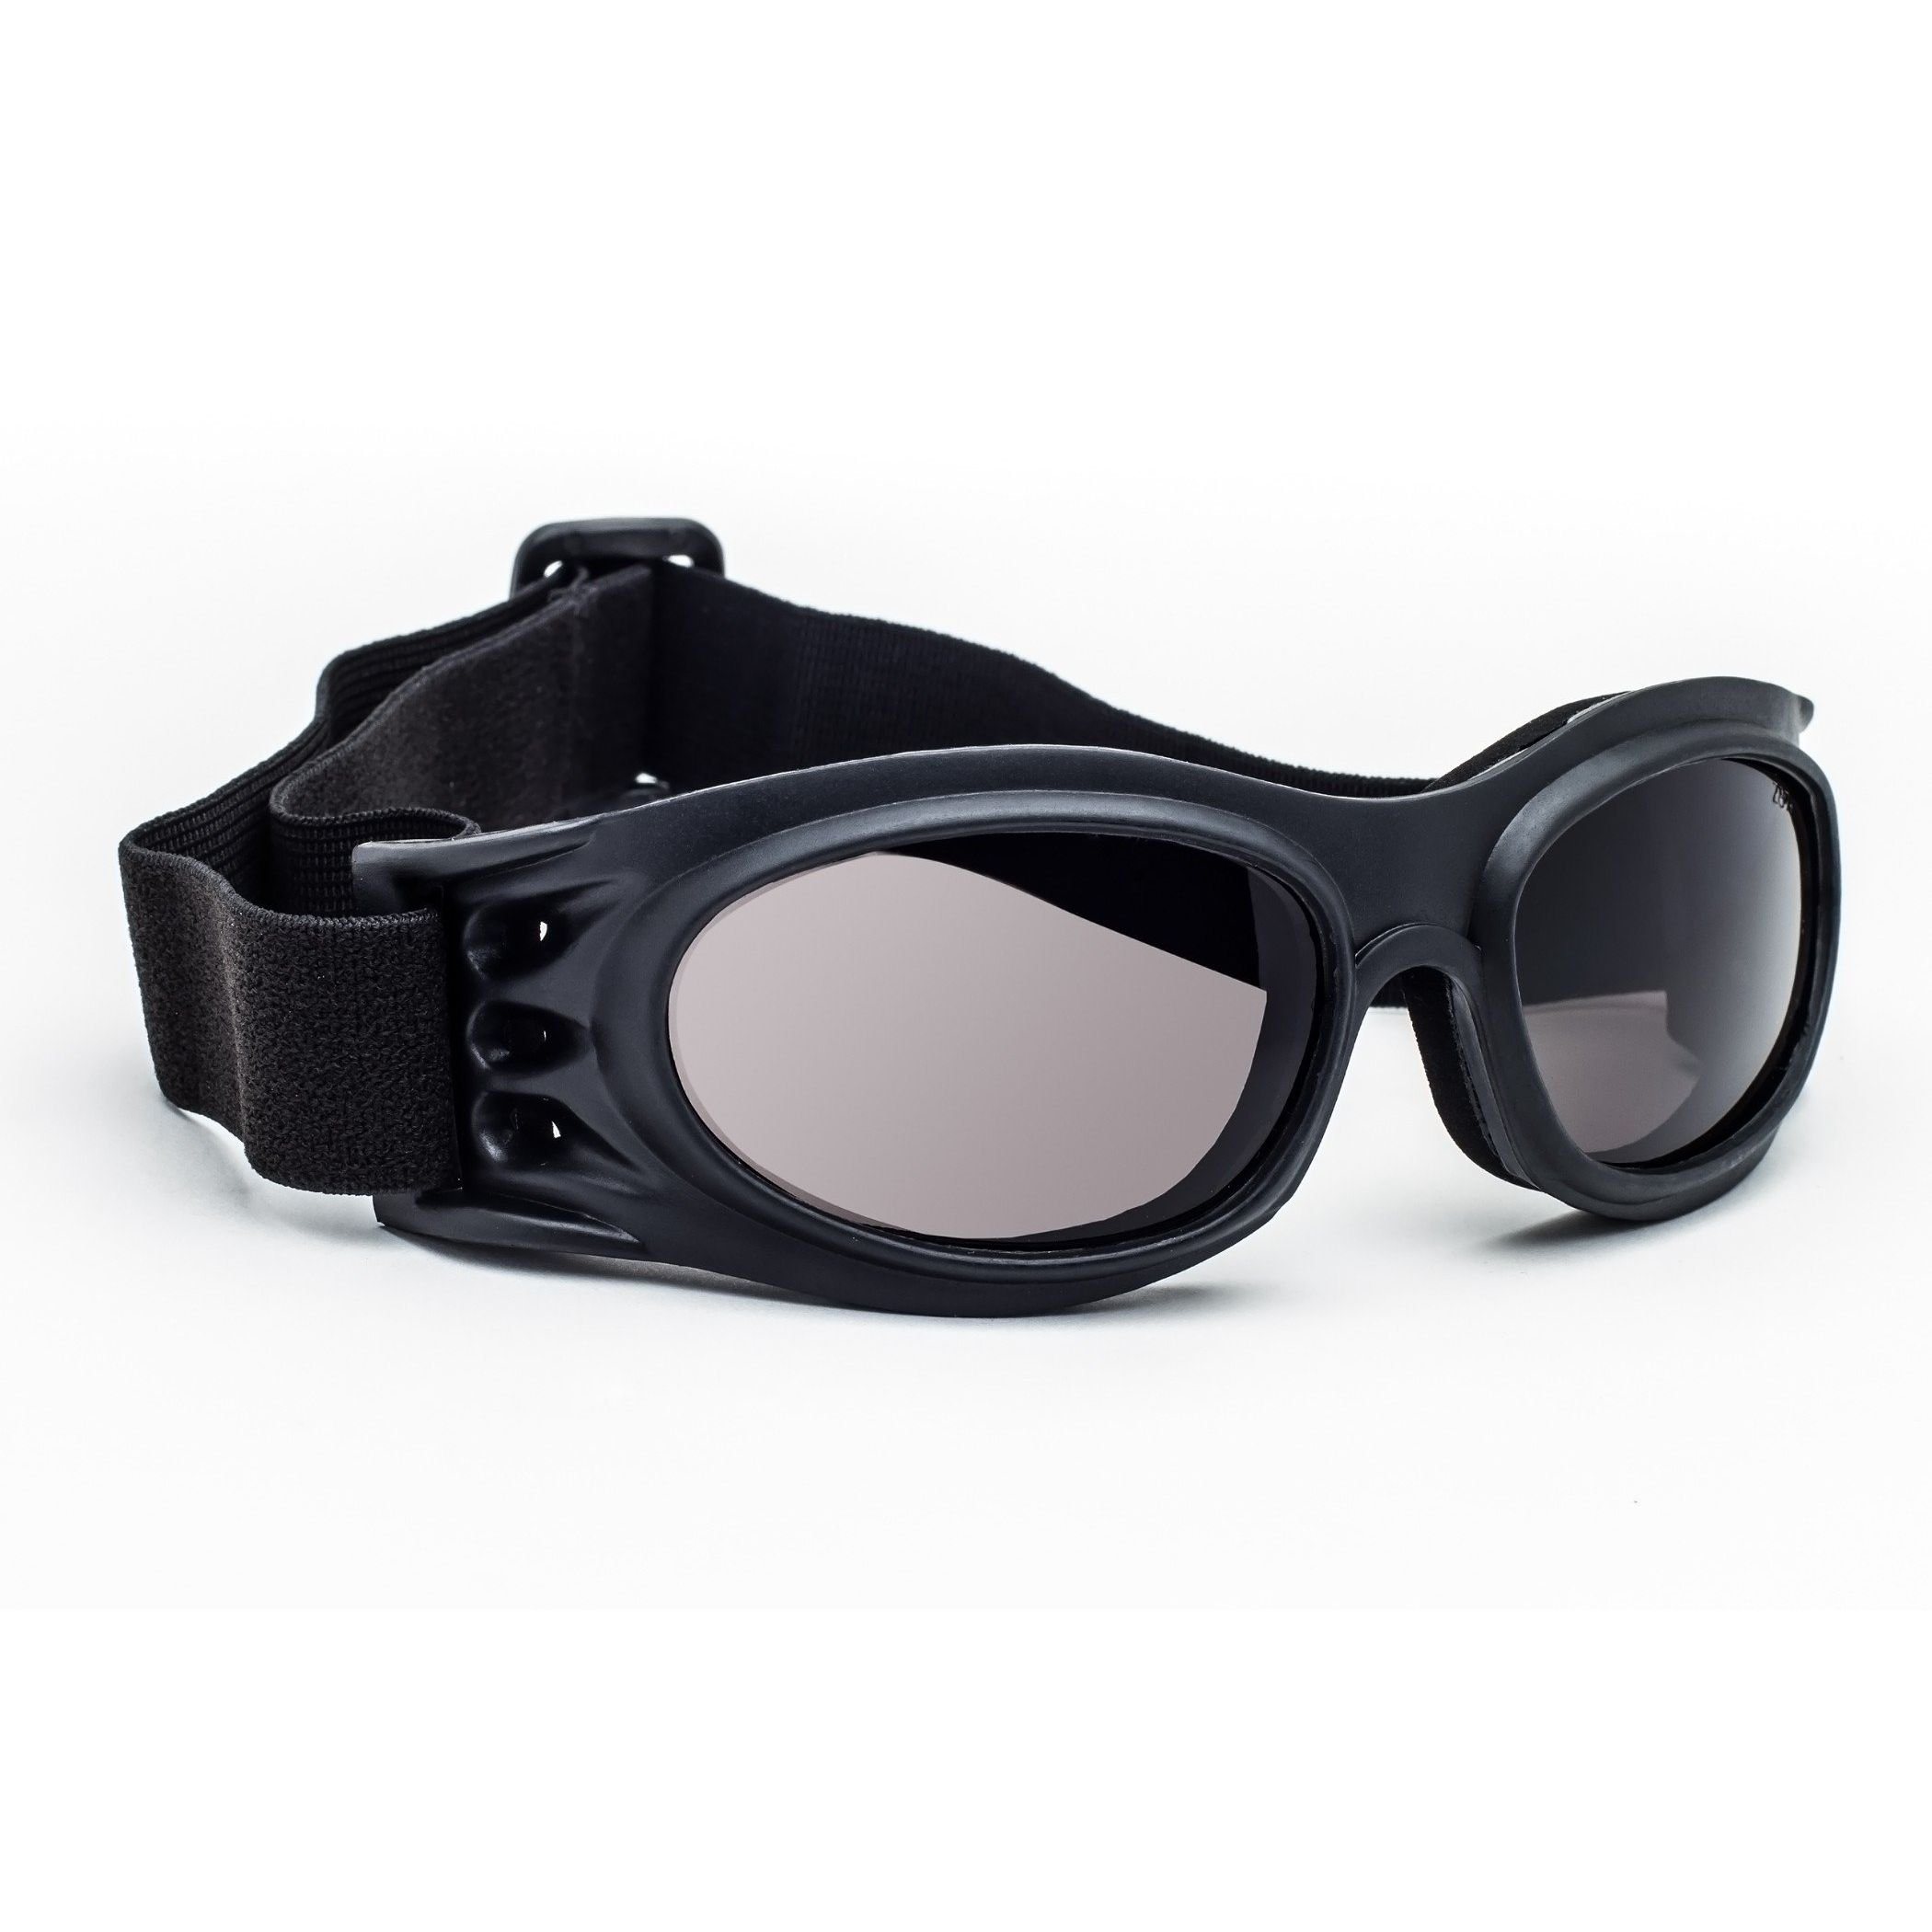 49a0d81049a ... Prescription Safety Glasses  RK2 Prescription Goggle